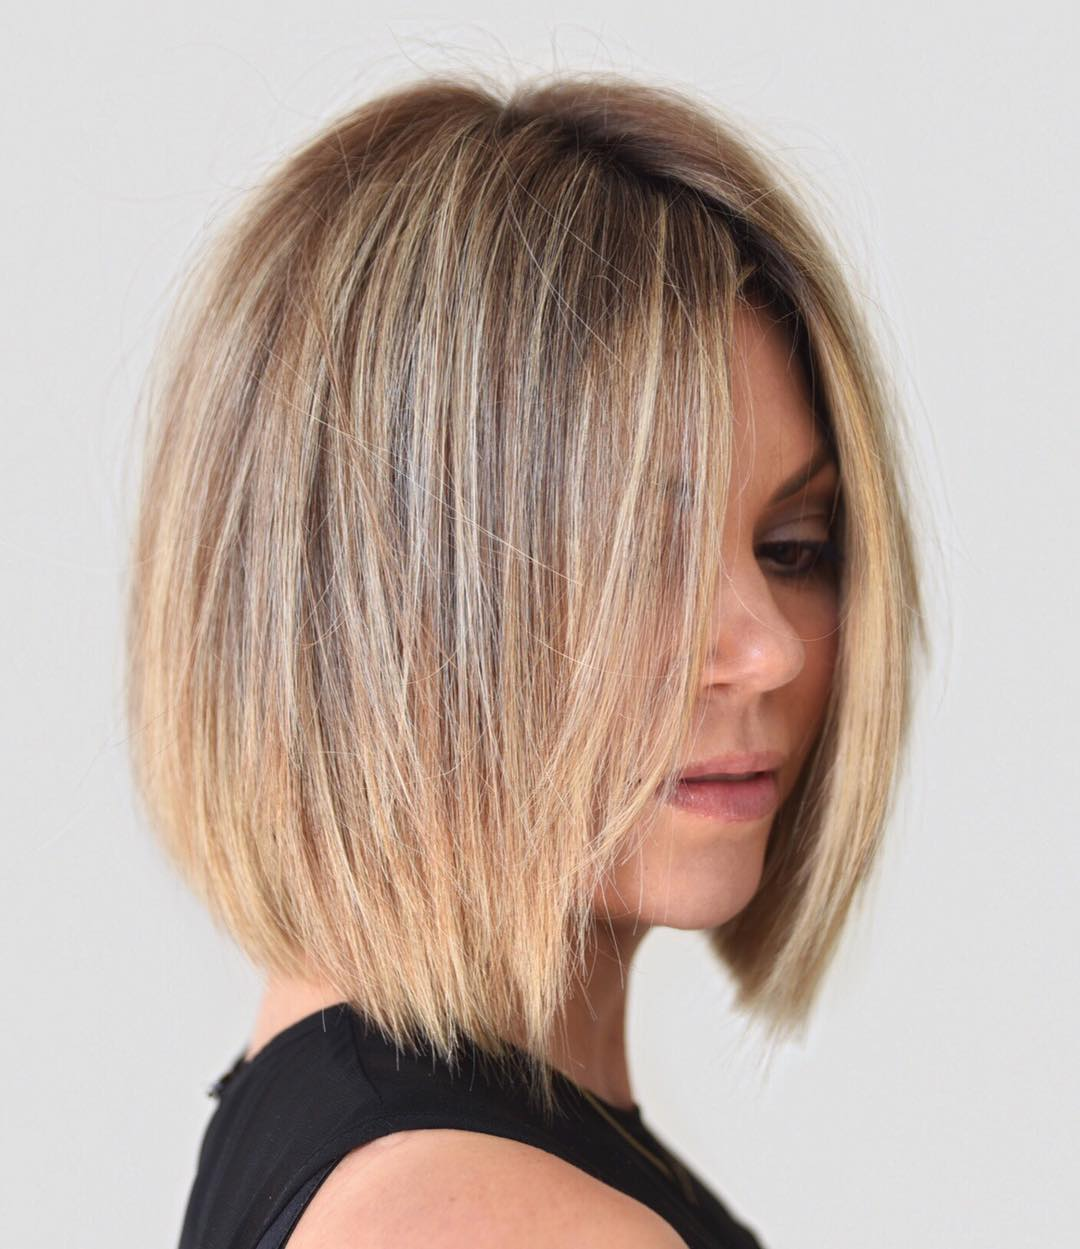 31 Stunning Medium Layered Bob Hairstyle For Every Woman